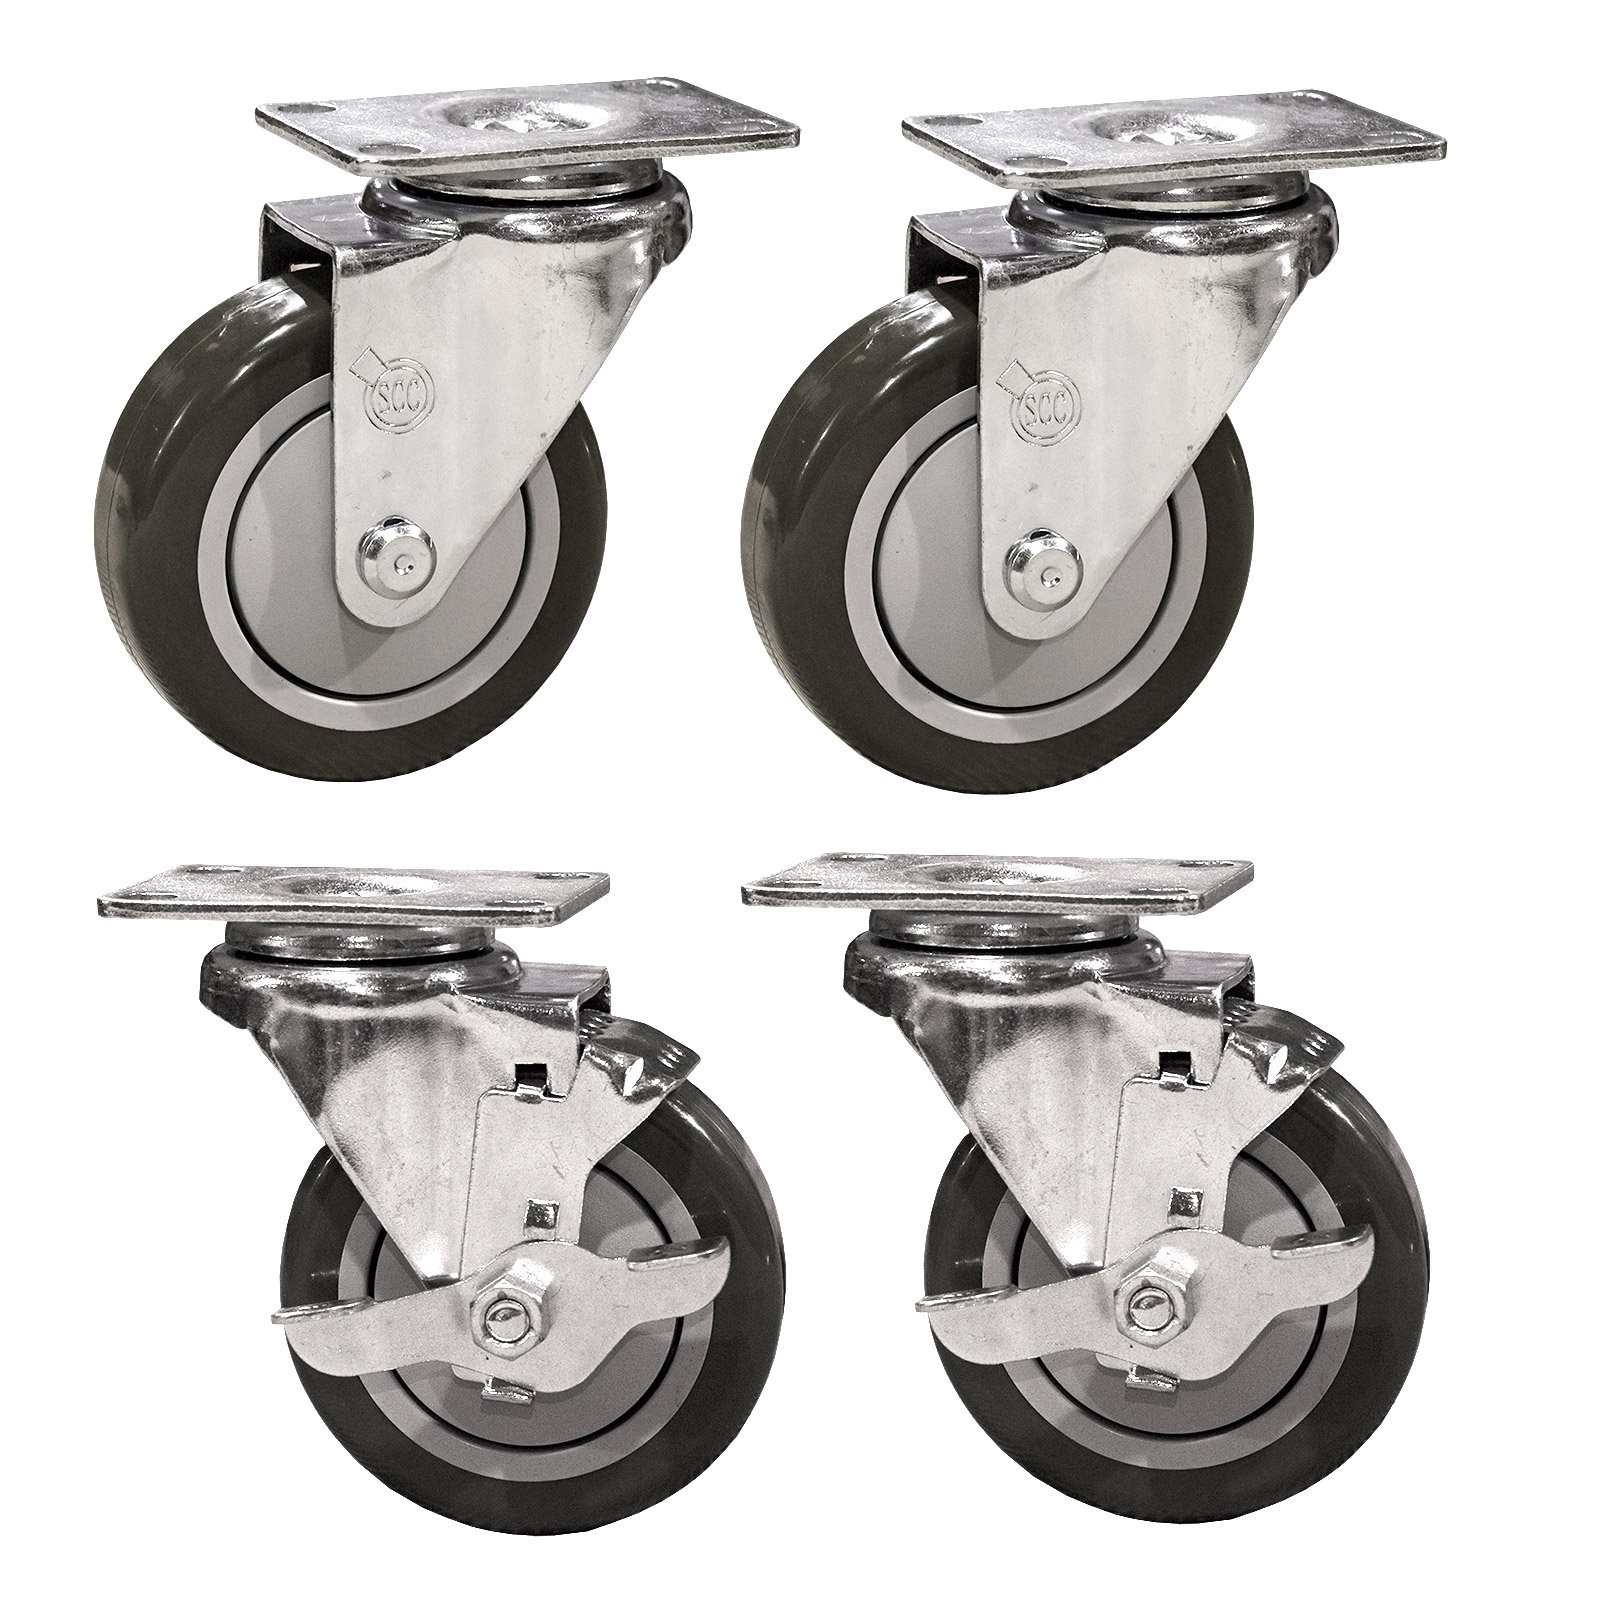 Service Caster SCC-SS20S414-PPUB-2-TLB-2 Stainless Steel Swivel Casters with Brakes, Non-marking Polyurethane Wheel, 4'' Size (Pack of 4)